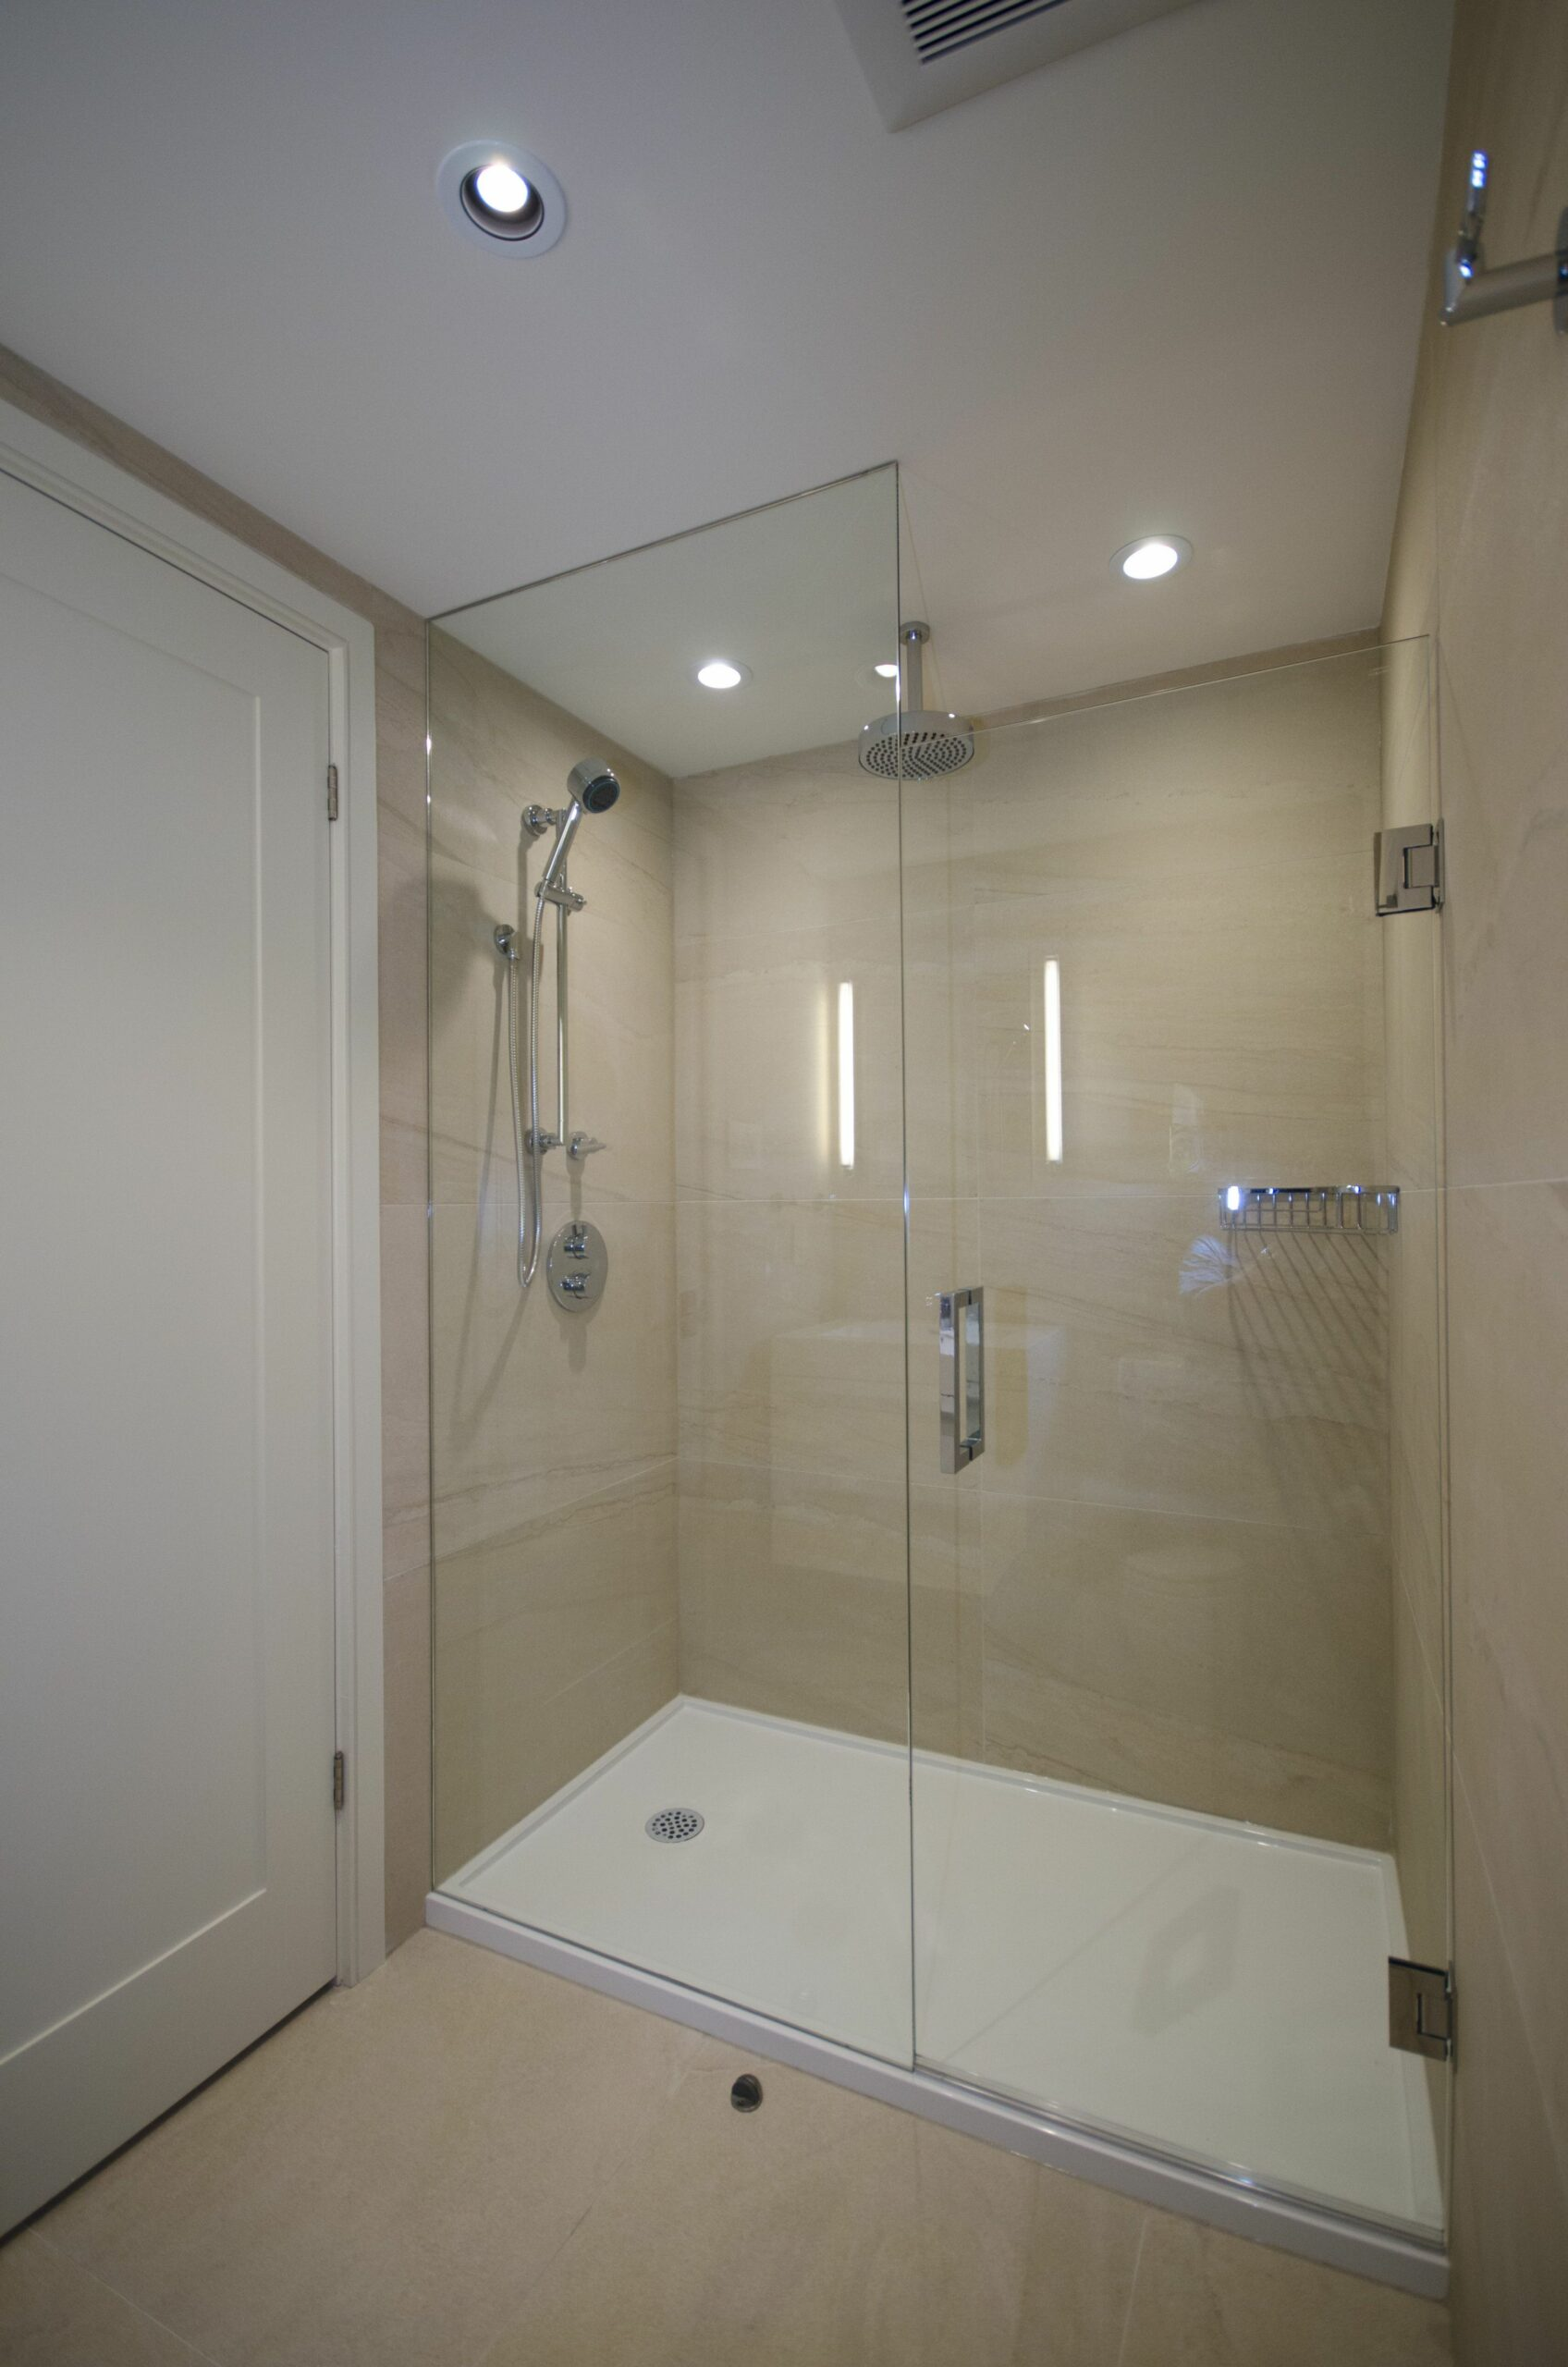 Large Shower Enclosure with Custom Glass (With images) | Shower ..